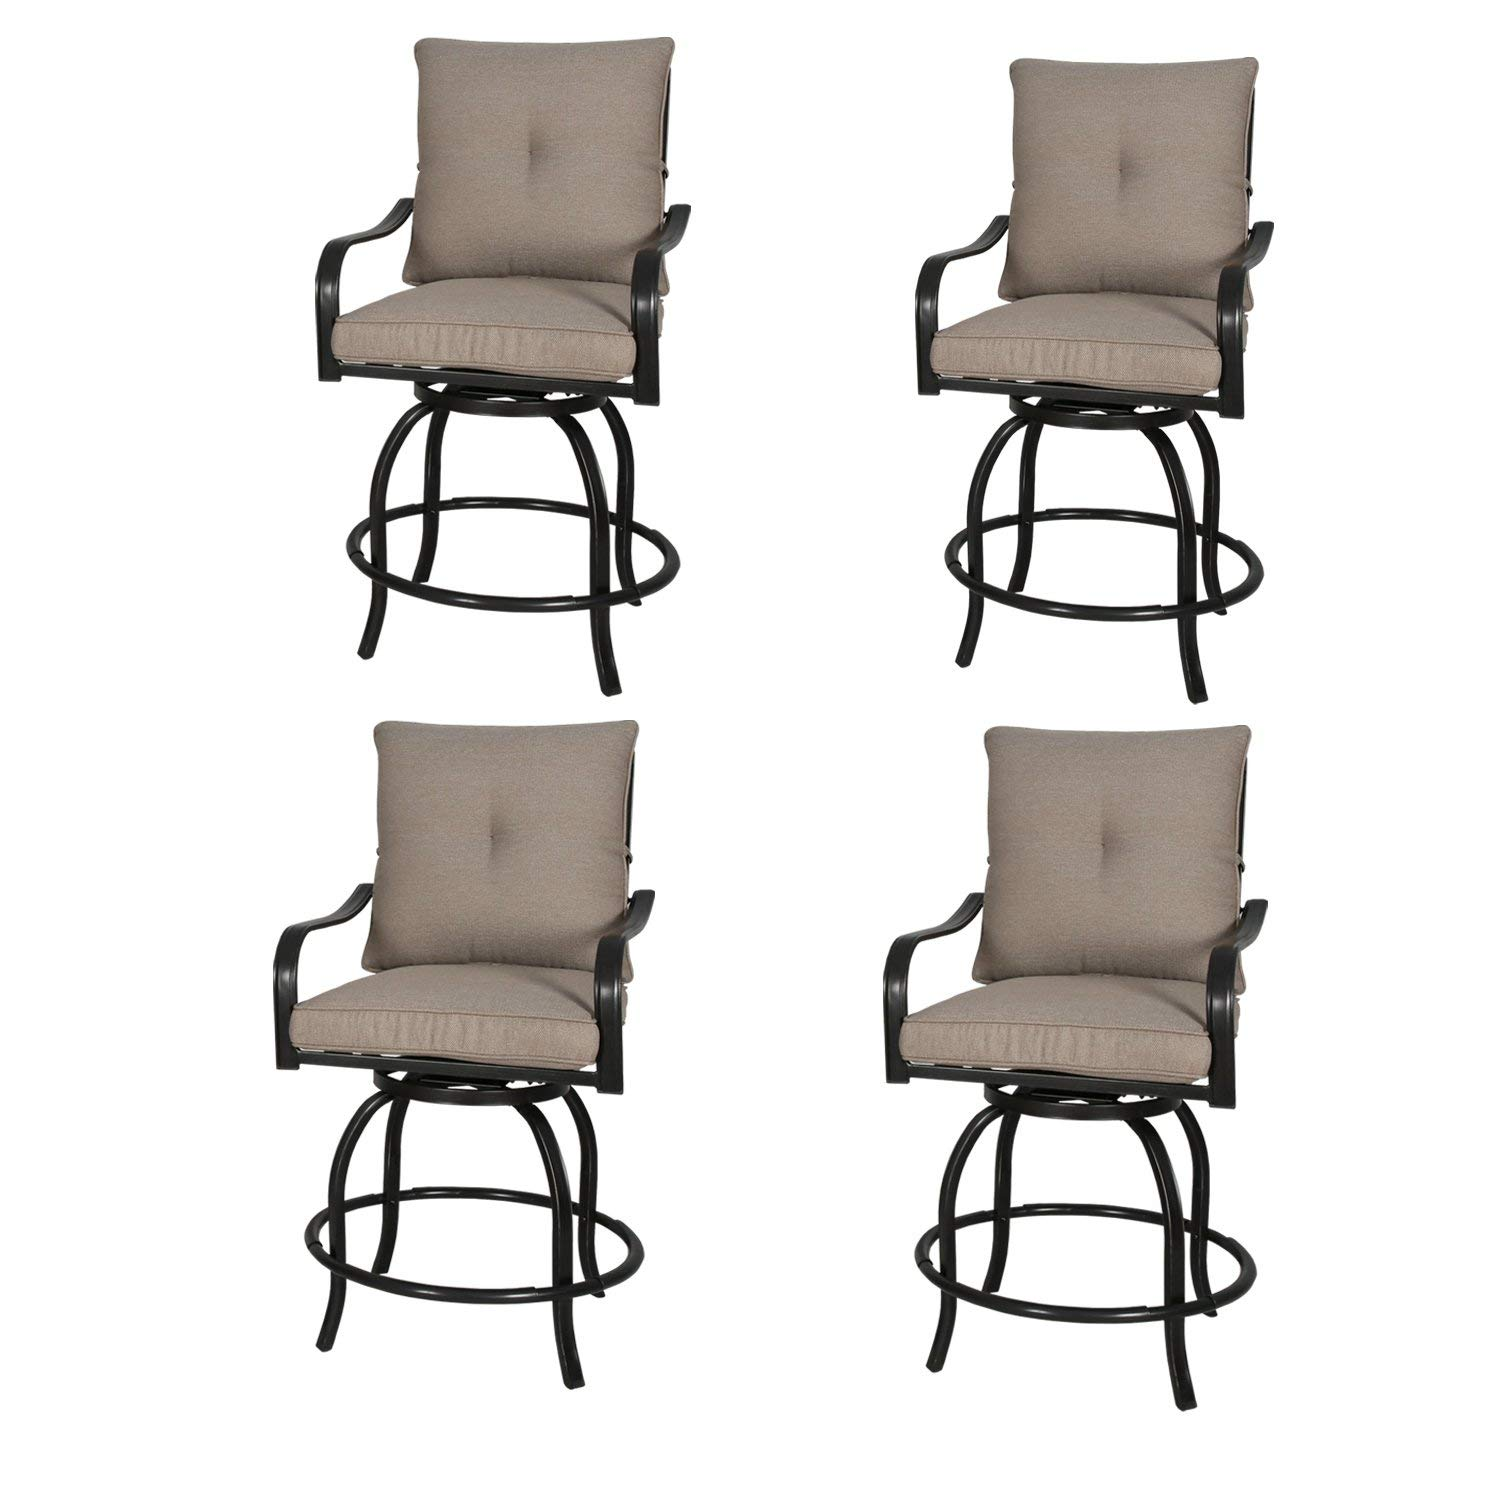 Outstanding Buy Rimba Outdoor Swivel Chairs Height Patio Bar Stools With Spiritservingveterans Wood Chair Design Ideas Spiritservingveteransorg